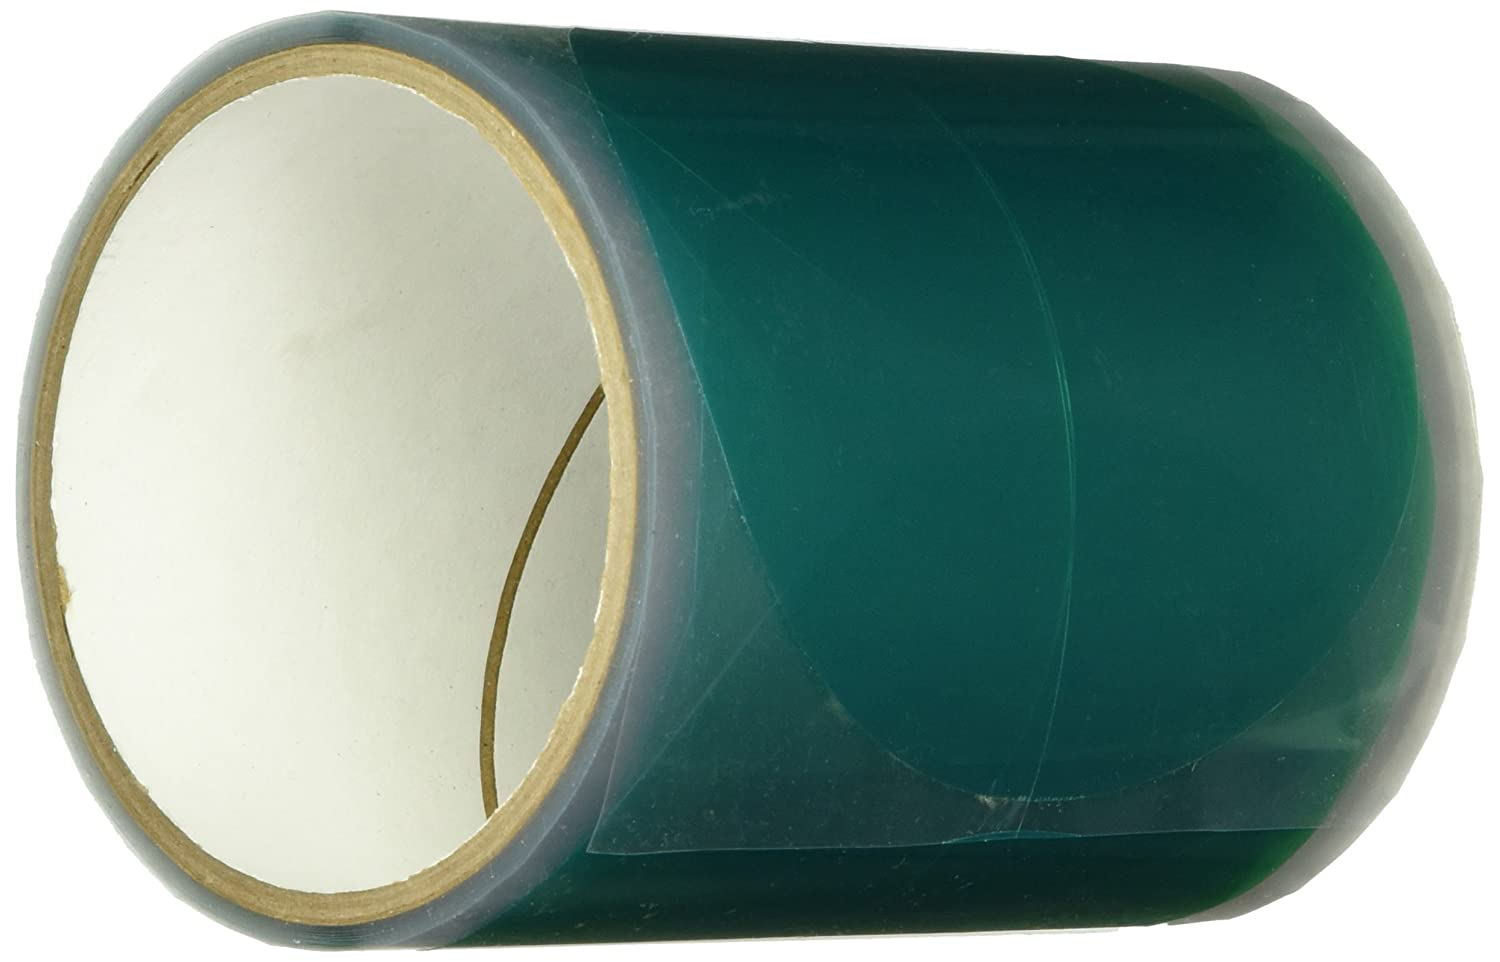 pack of 250 3M 8992 Green Polyester Film Tape 0.625 Diameter Circles